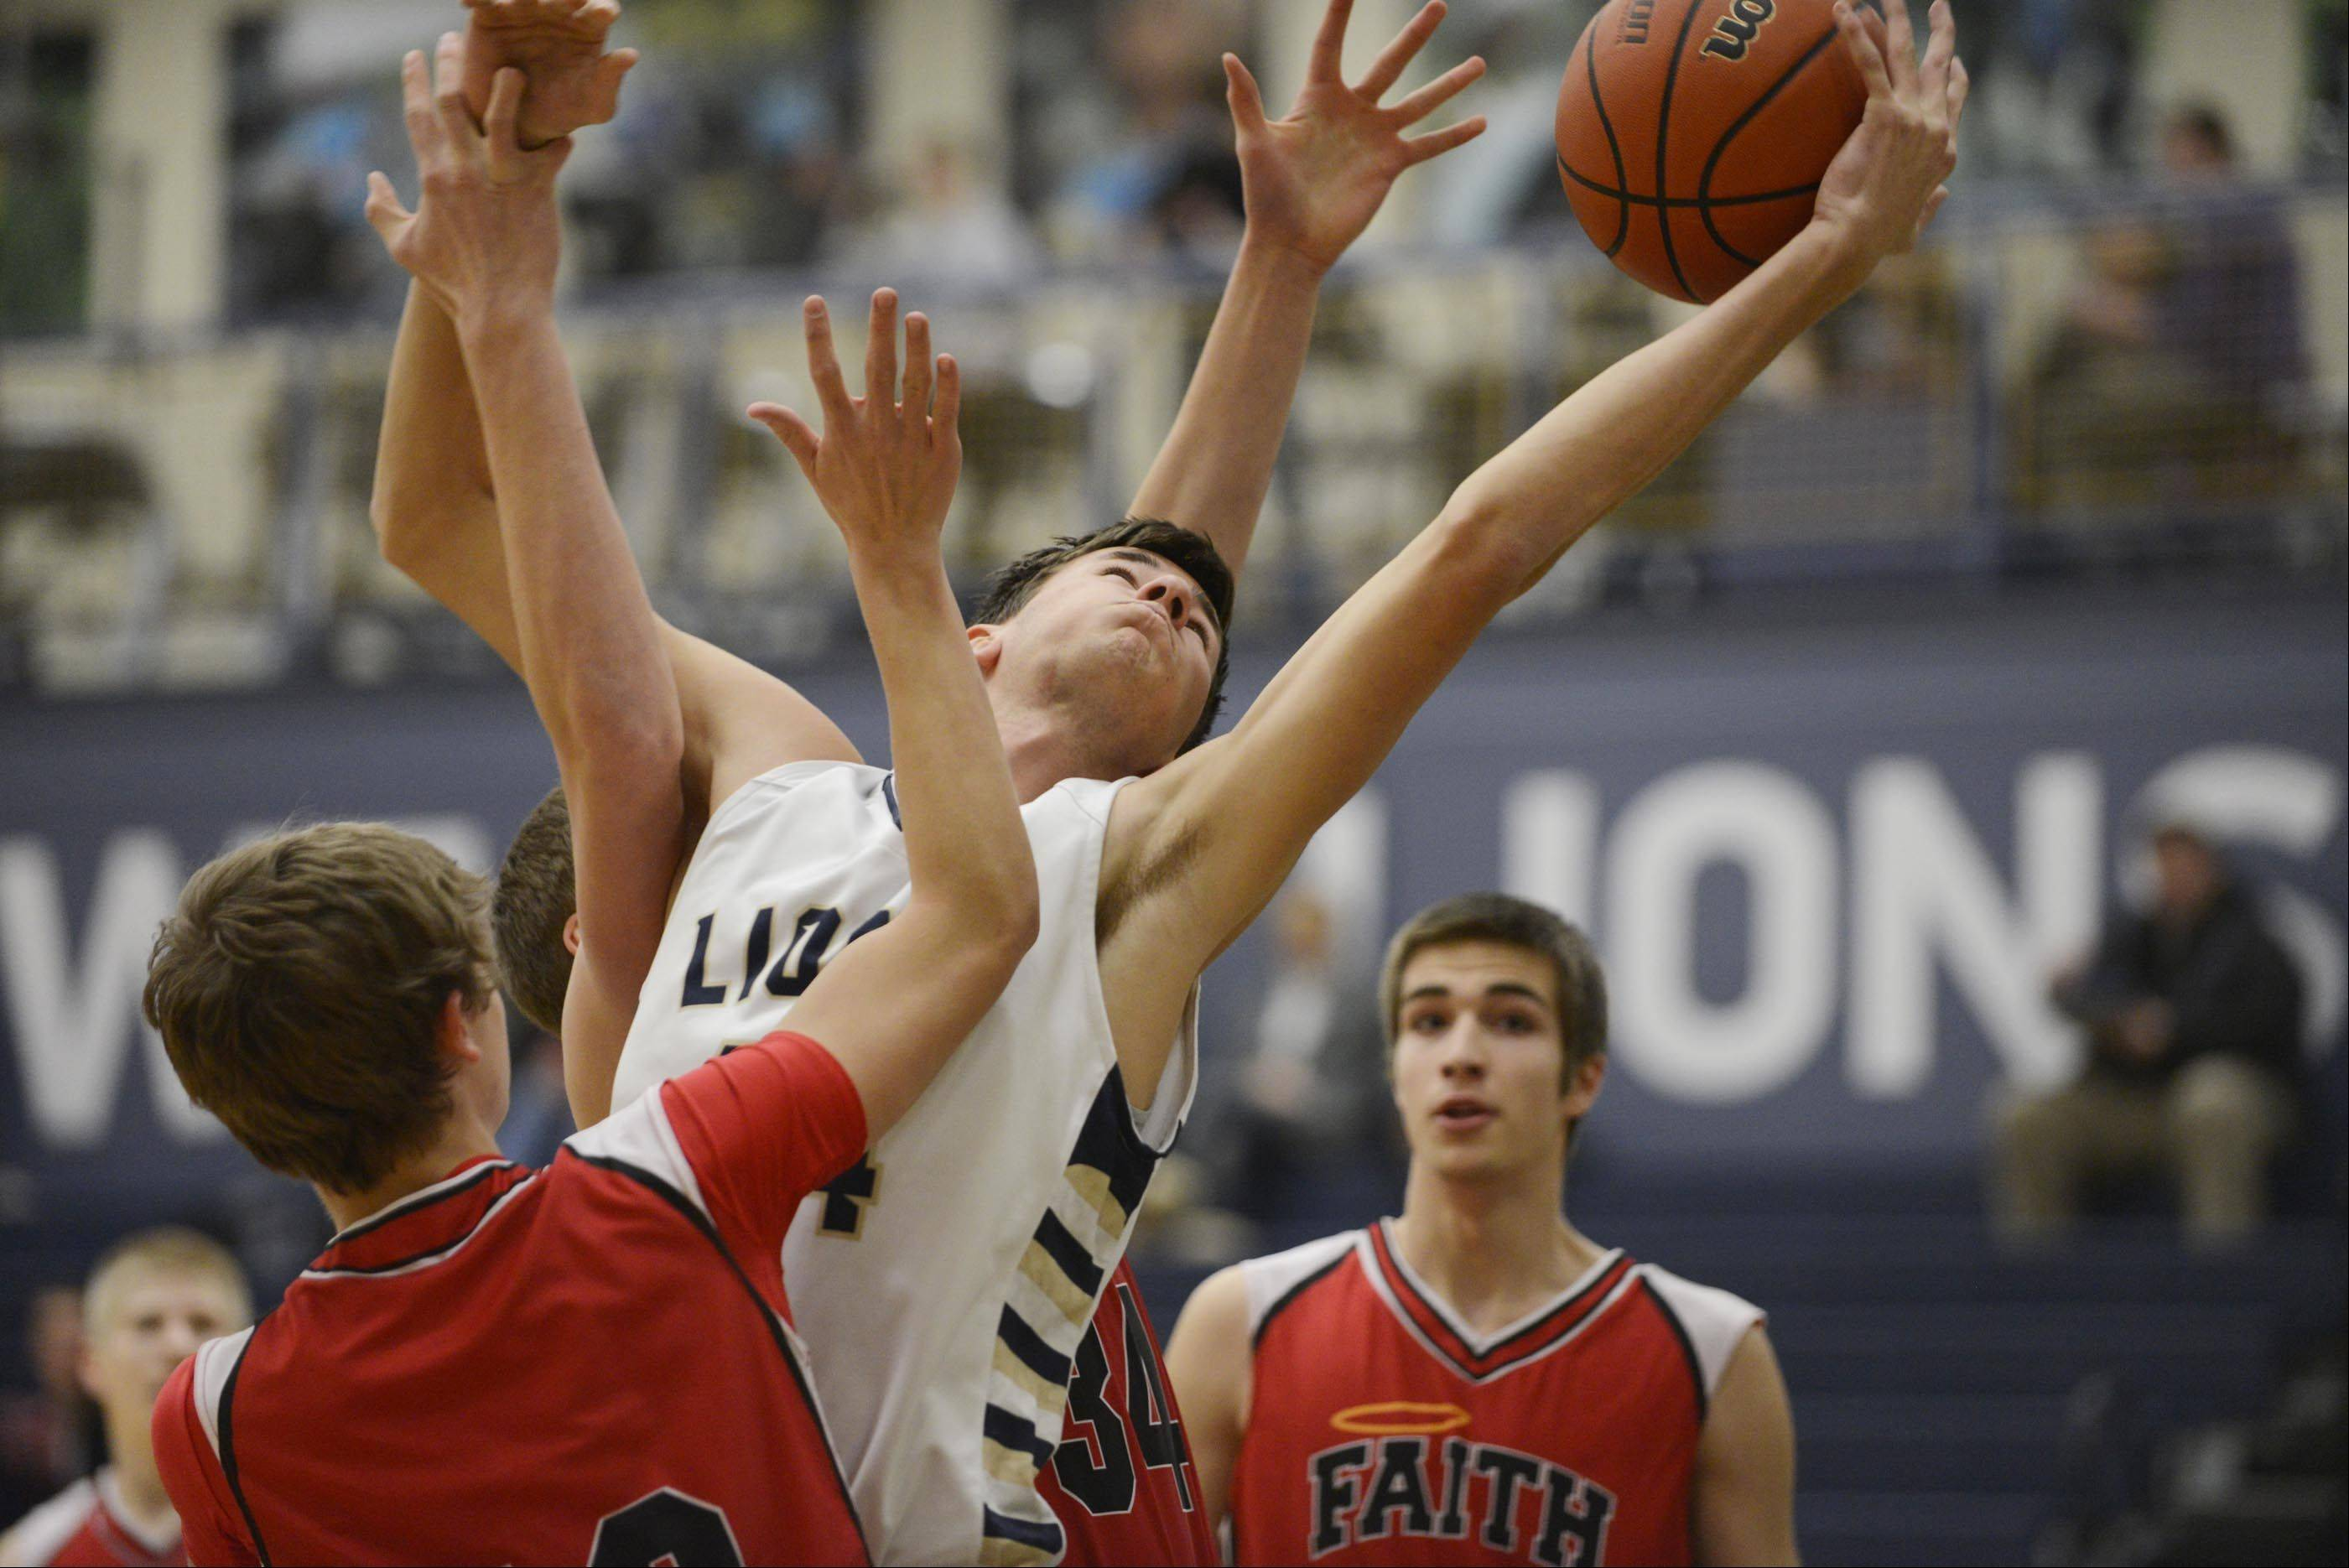 Harvest Christian Academy's John Vislisel stretches for a rebound against Faith Lutheran Thursday in Elgin.